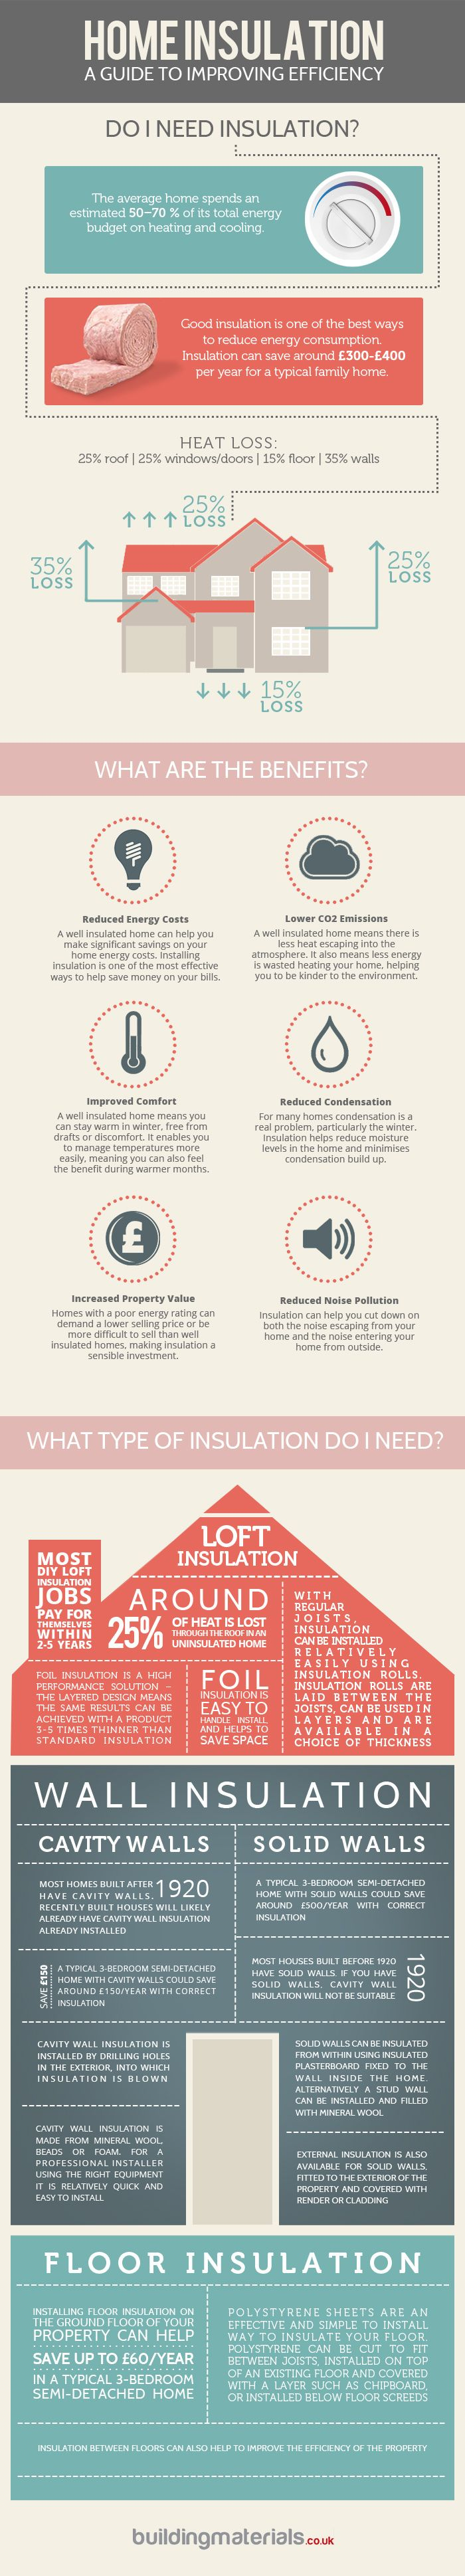 Home Insulation 101 : A guide to insulating your home including the benefits provided by good insulation and information about the most suitable types of insulation for different areas of your property.  > http://infographicsmania.com/home-insulation-101/?utm_source=Pinterest&utm_medium=ZAKKAS&utm_campaign=SNAP